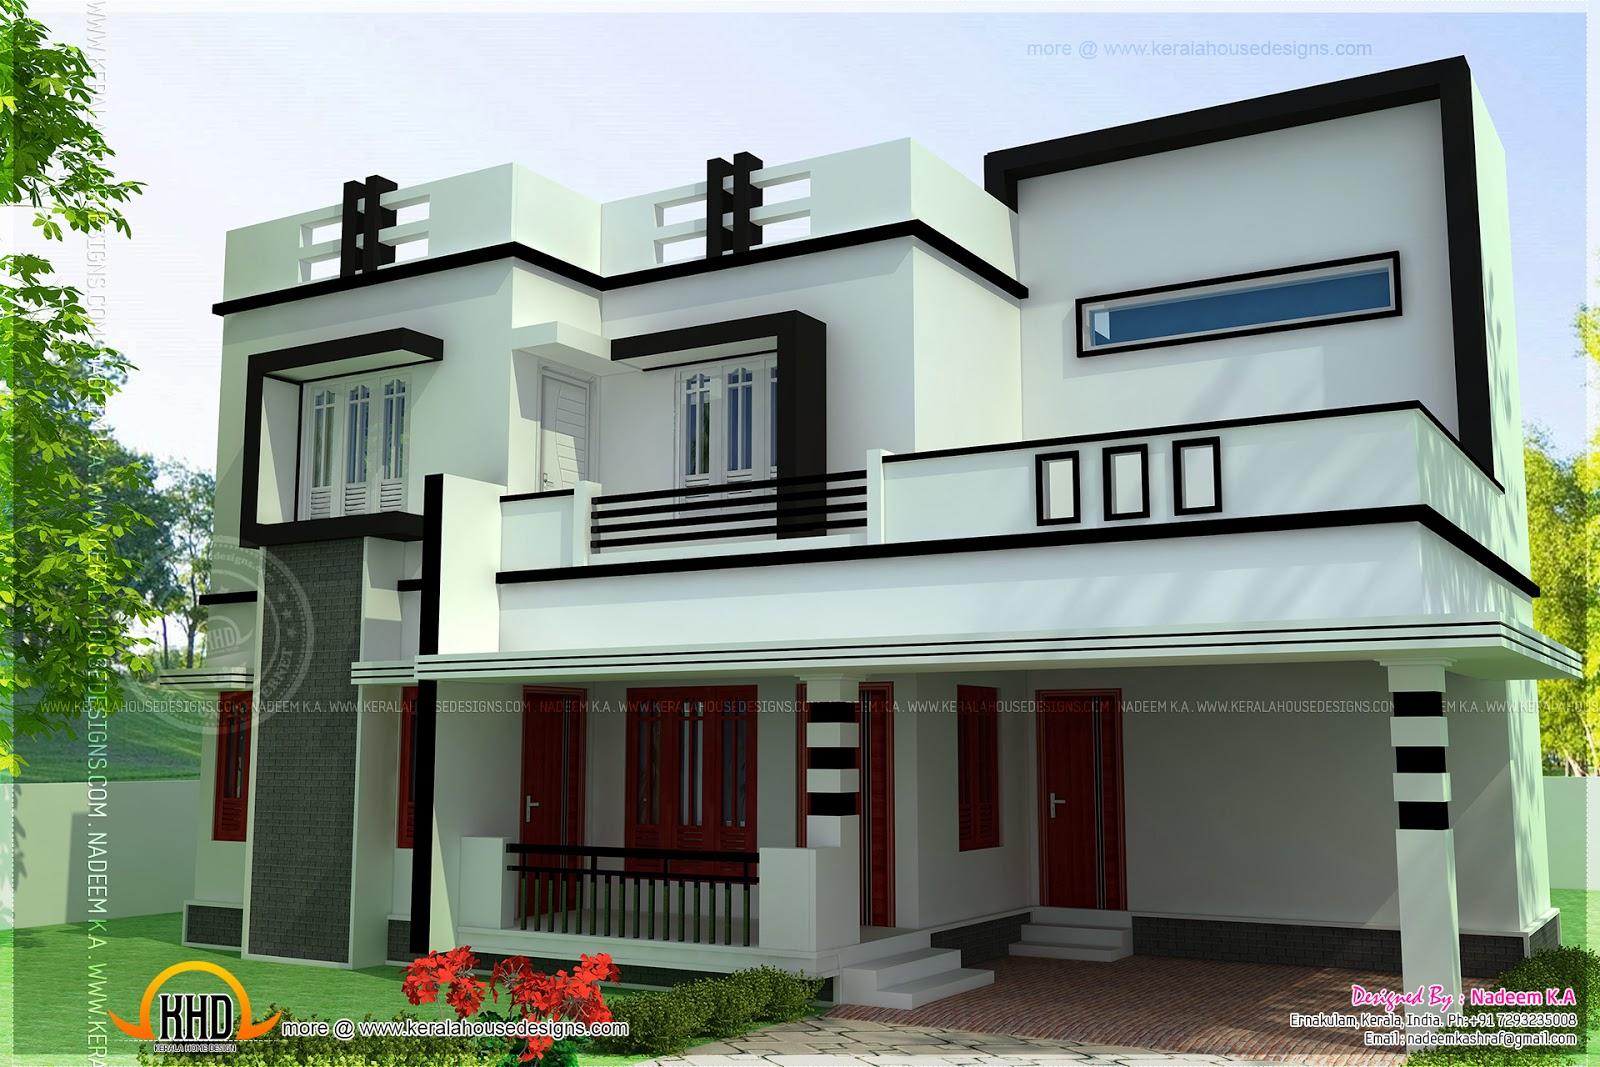 Flat roof 4 bedroom modern house kerala home design and floor plans - Modern house designs with attic ...